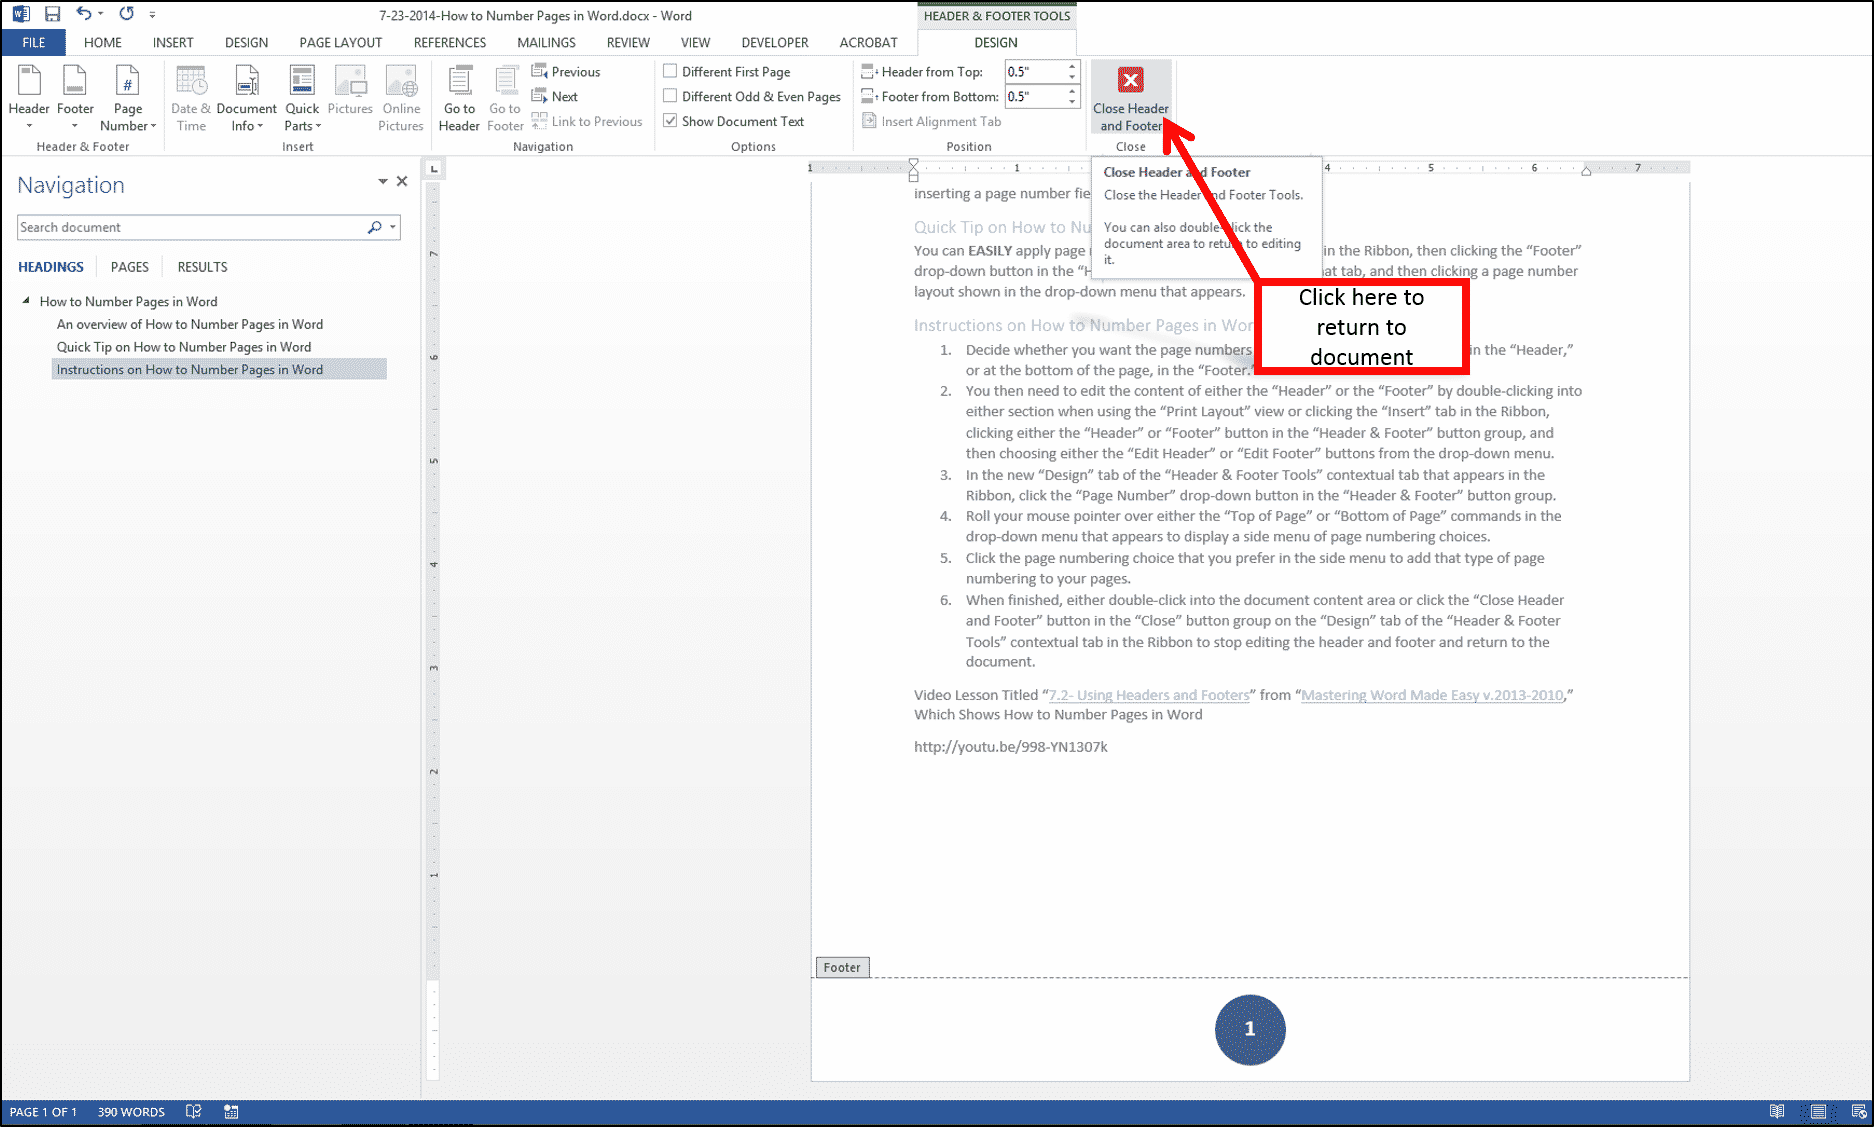 how to number pages in word a tutorial how to number pages in word step 6 when finished either double